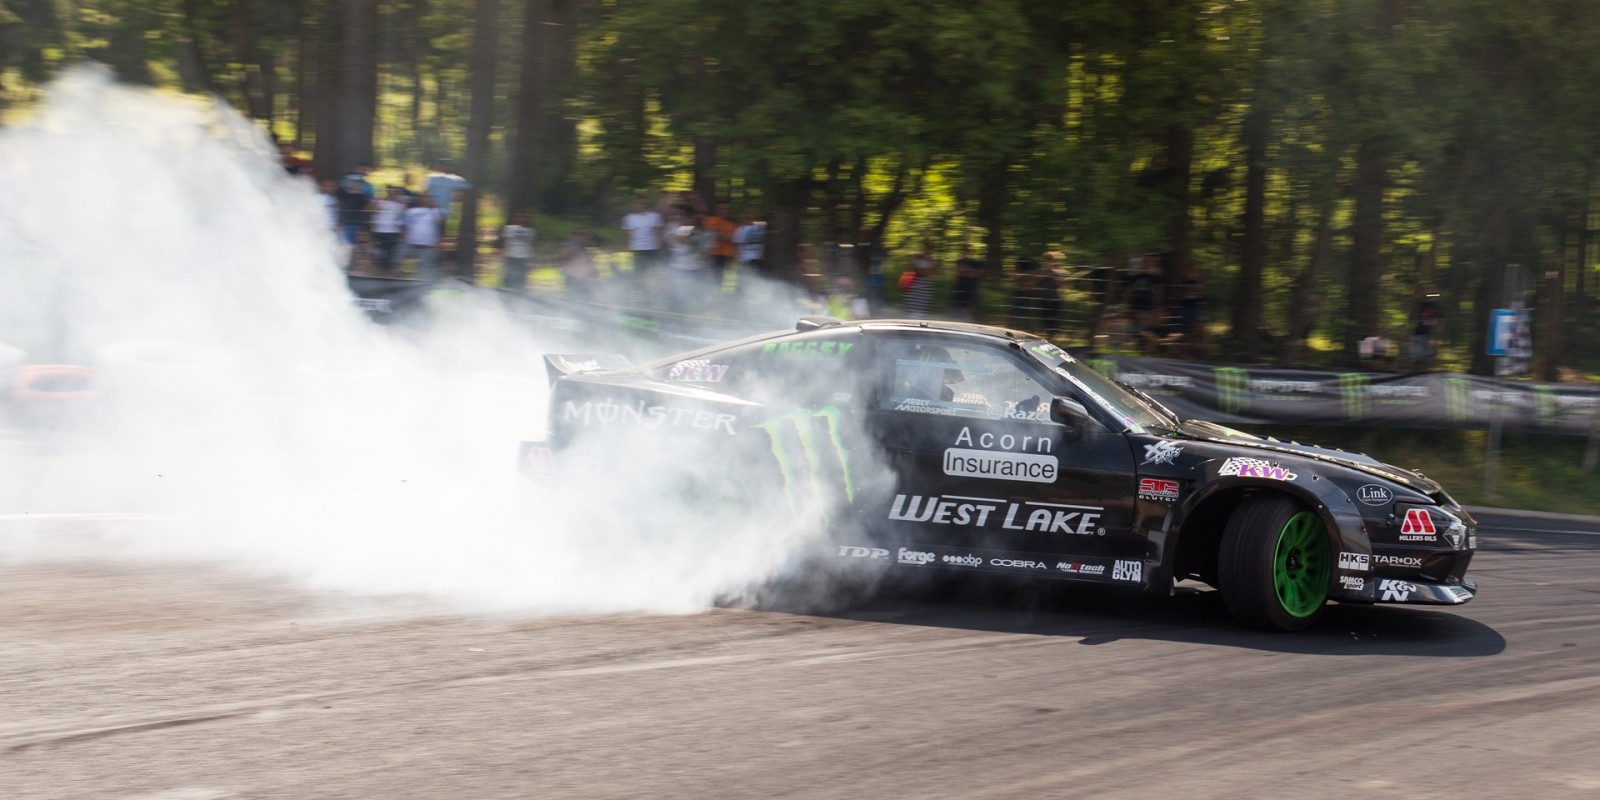 Steve Baggsy Biagioni at round two of the 2015 King of Europe Drift Pro Series, hosted in Poland